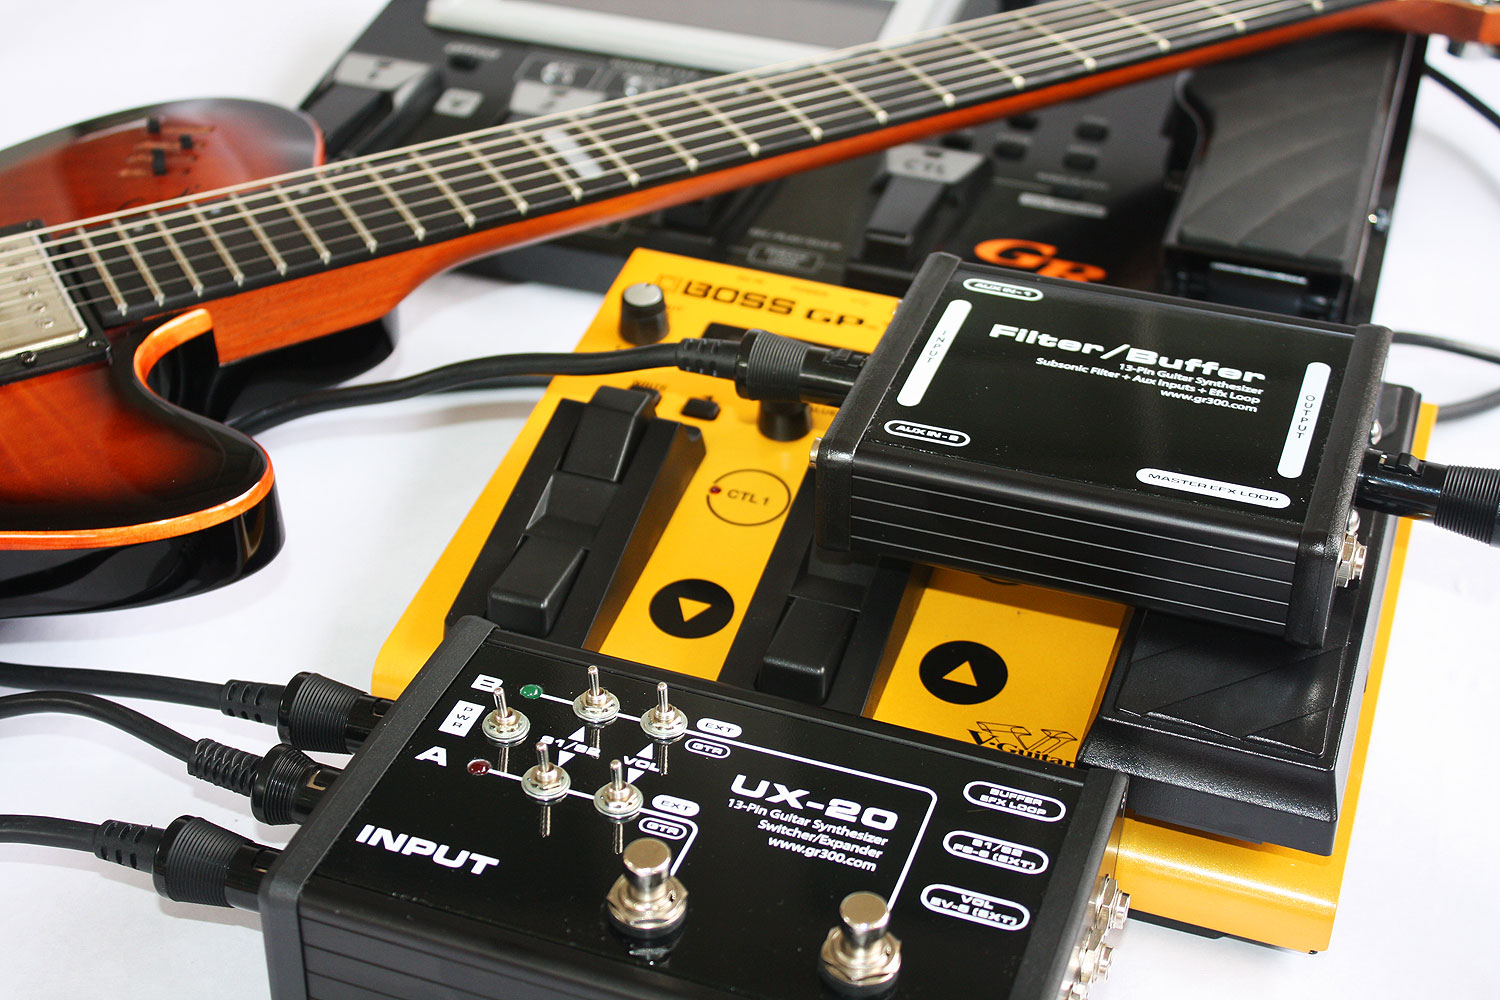 Opt-01 Roland Gr-55 Guitar Synth Rmc Subsonic Filter Gk-3